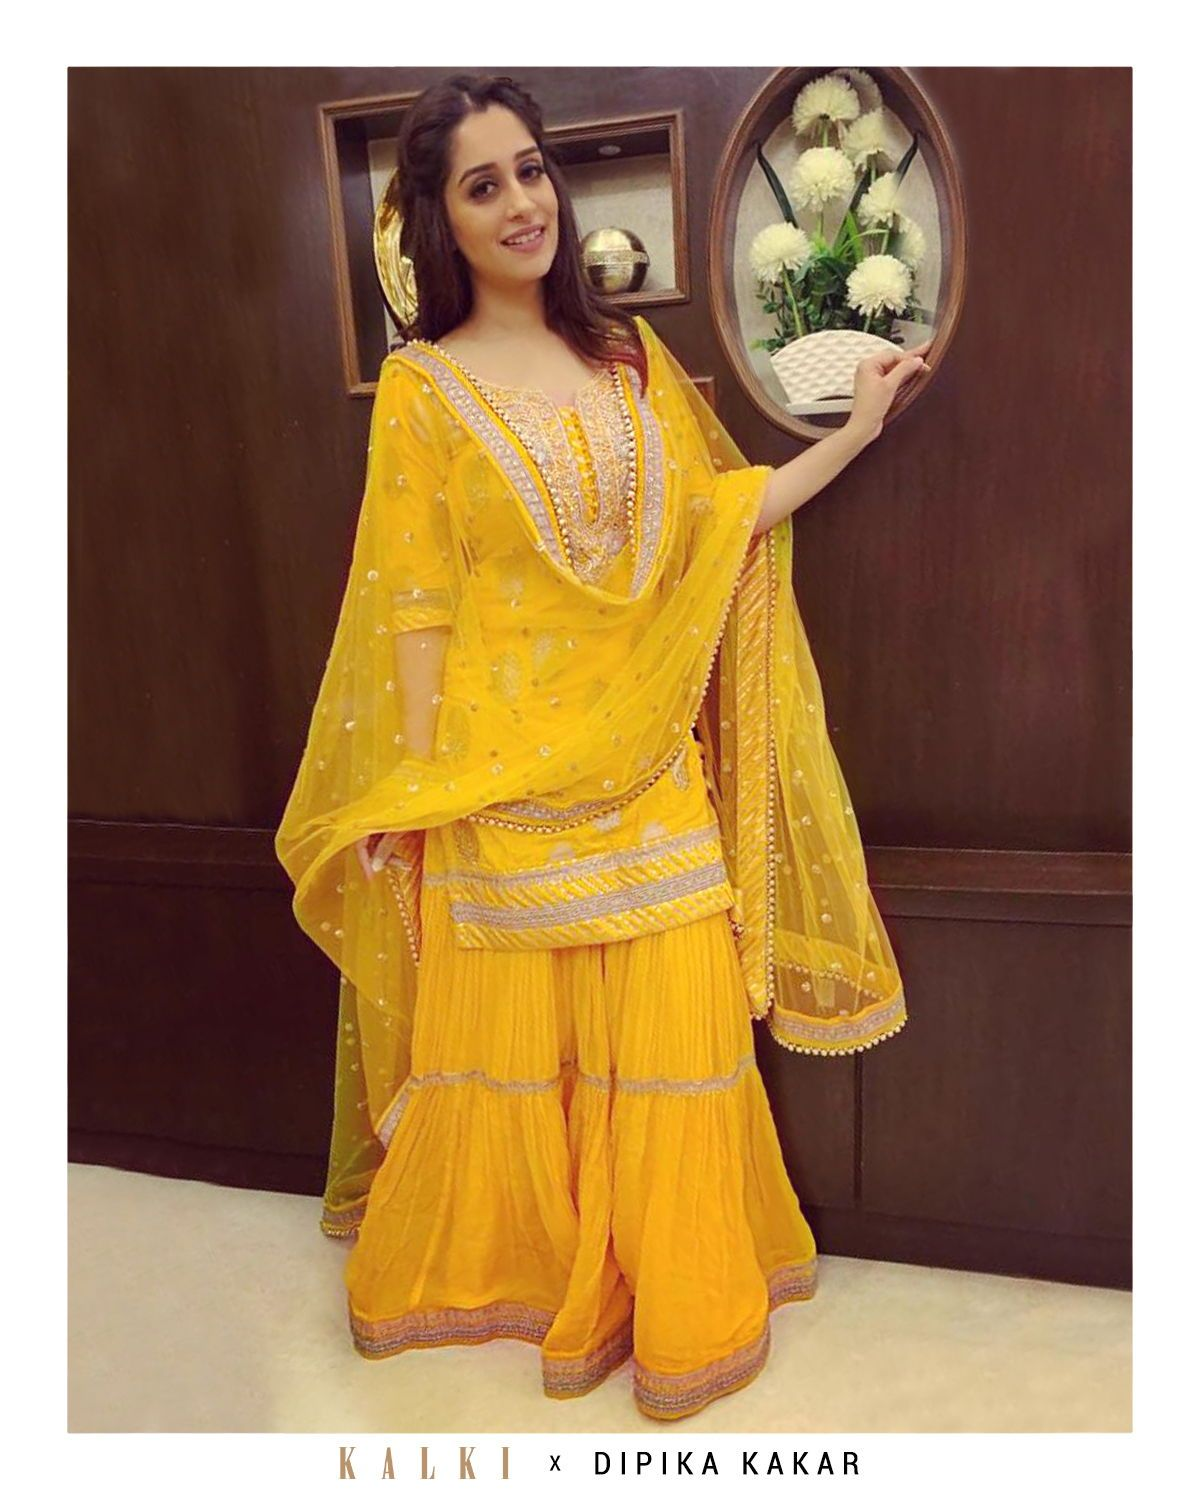 #KALKICelebThe #bigboss12 winner and our super favorite @ms.dipika in this stunning @kalkifashion outfit is how you would want to look like at the next wedding you attend. With a short sequins embroidered kurti and matching dupatta with a thick border, this yellow sharara suit is heavy on style and light in weight. #shararadesigns